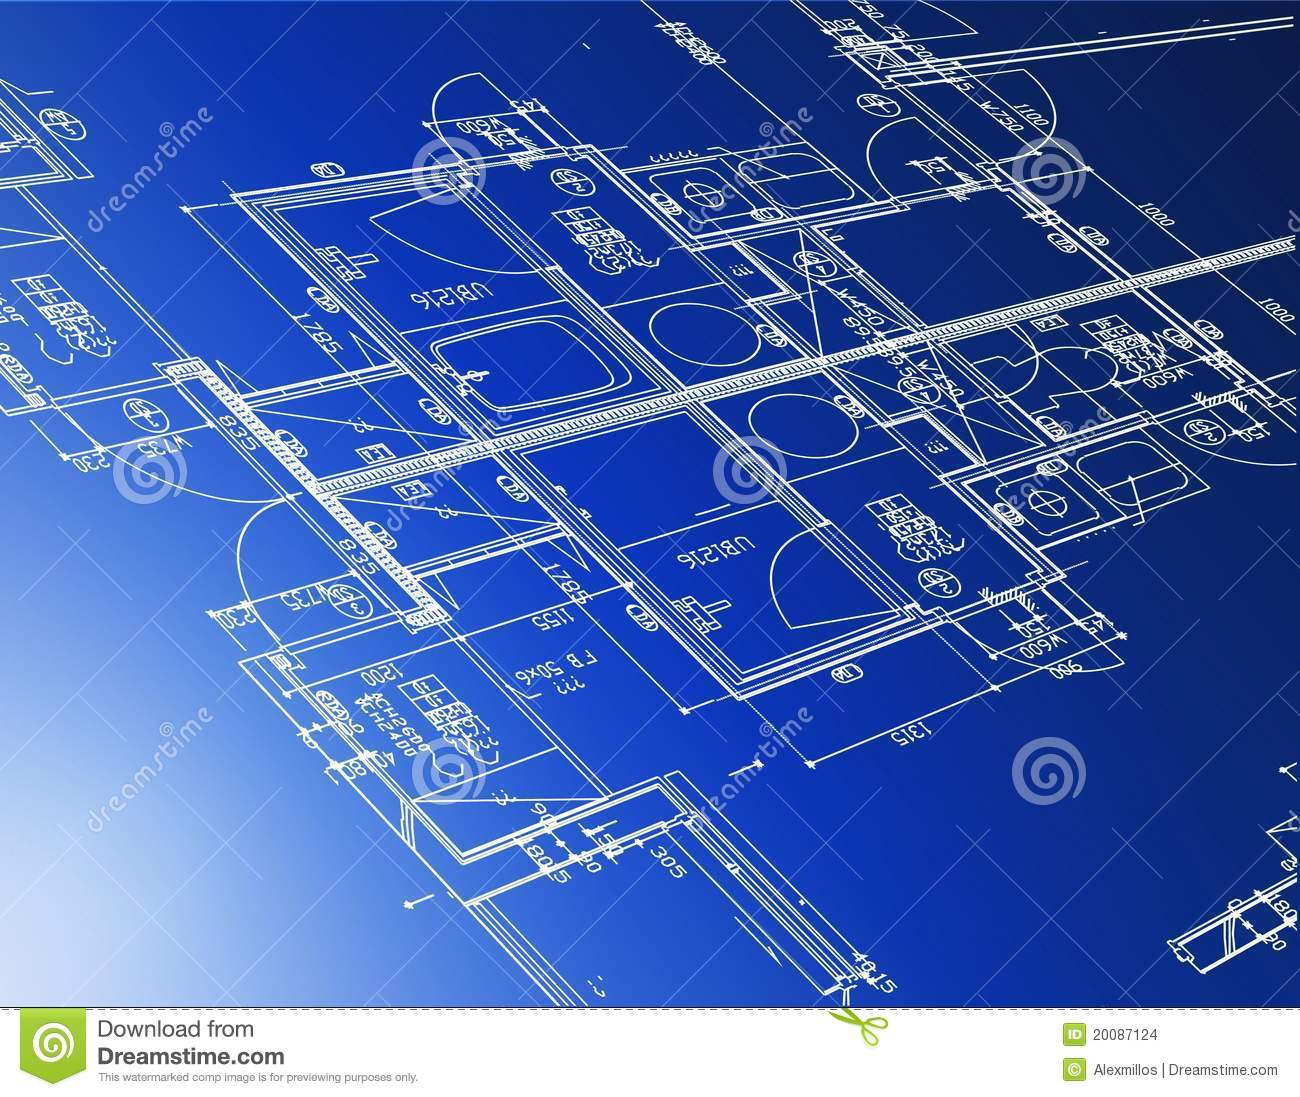 Architectural blueprints stock images image 20087124 for Architecture blueprints